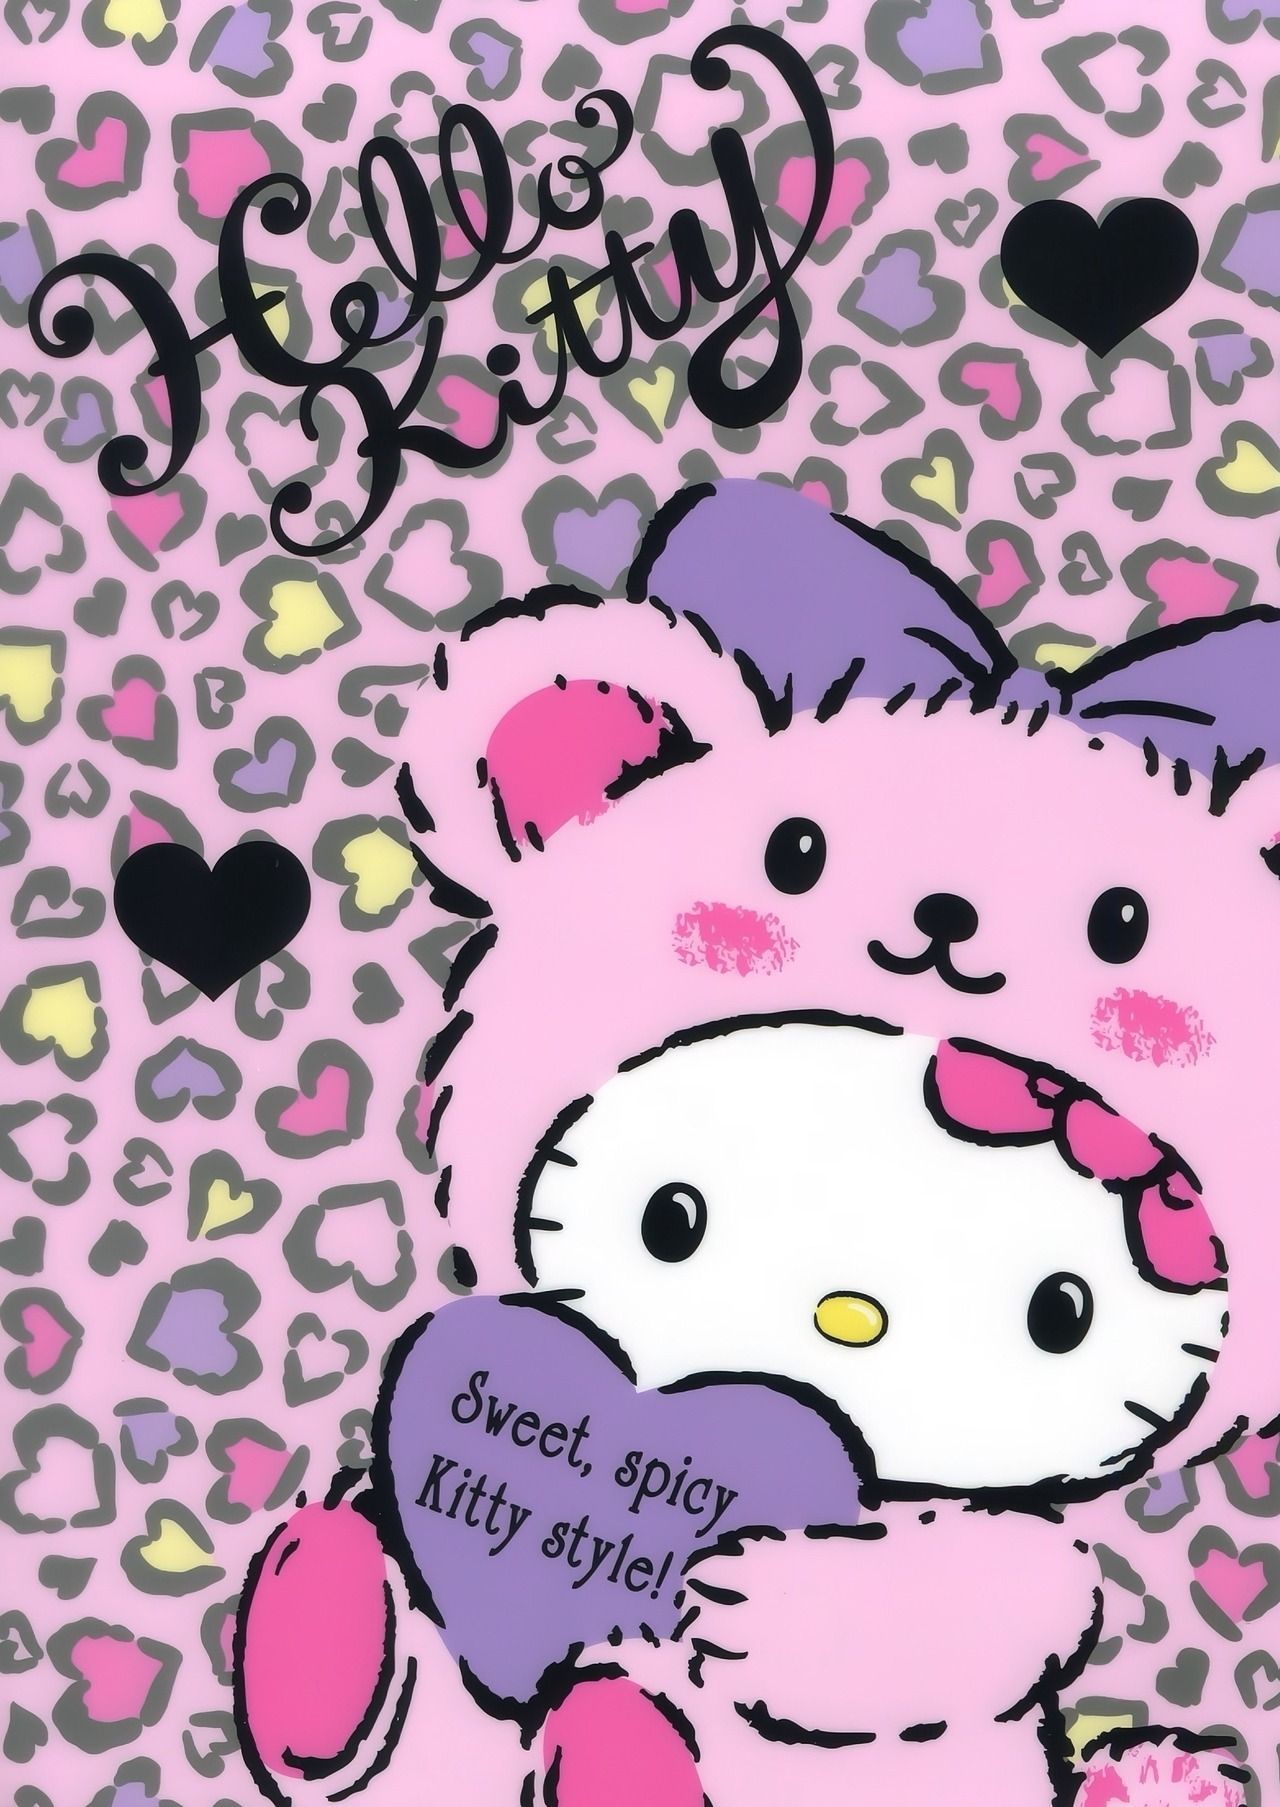 Most Inspiring Wallpaper Hello Kitty Friend - 42c22994532dfec10ba7cef2633f4a59  Picture_975296.jpg